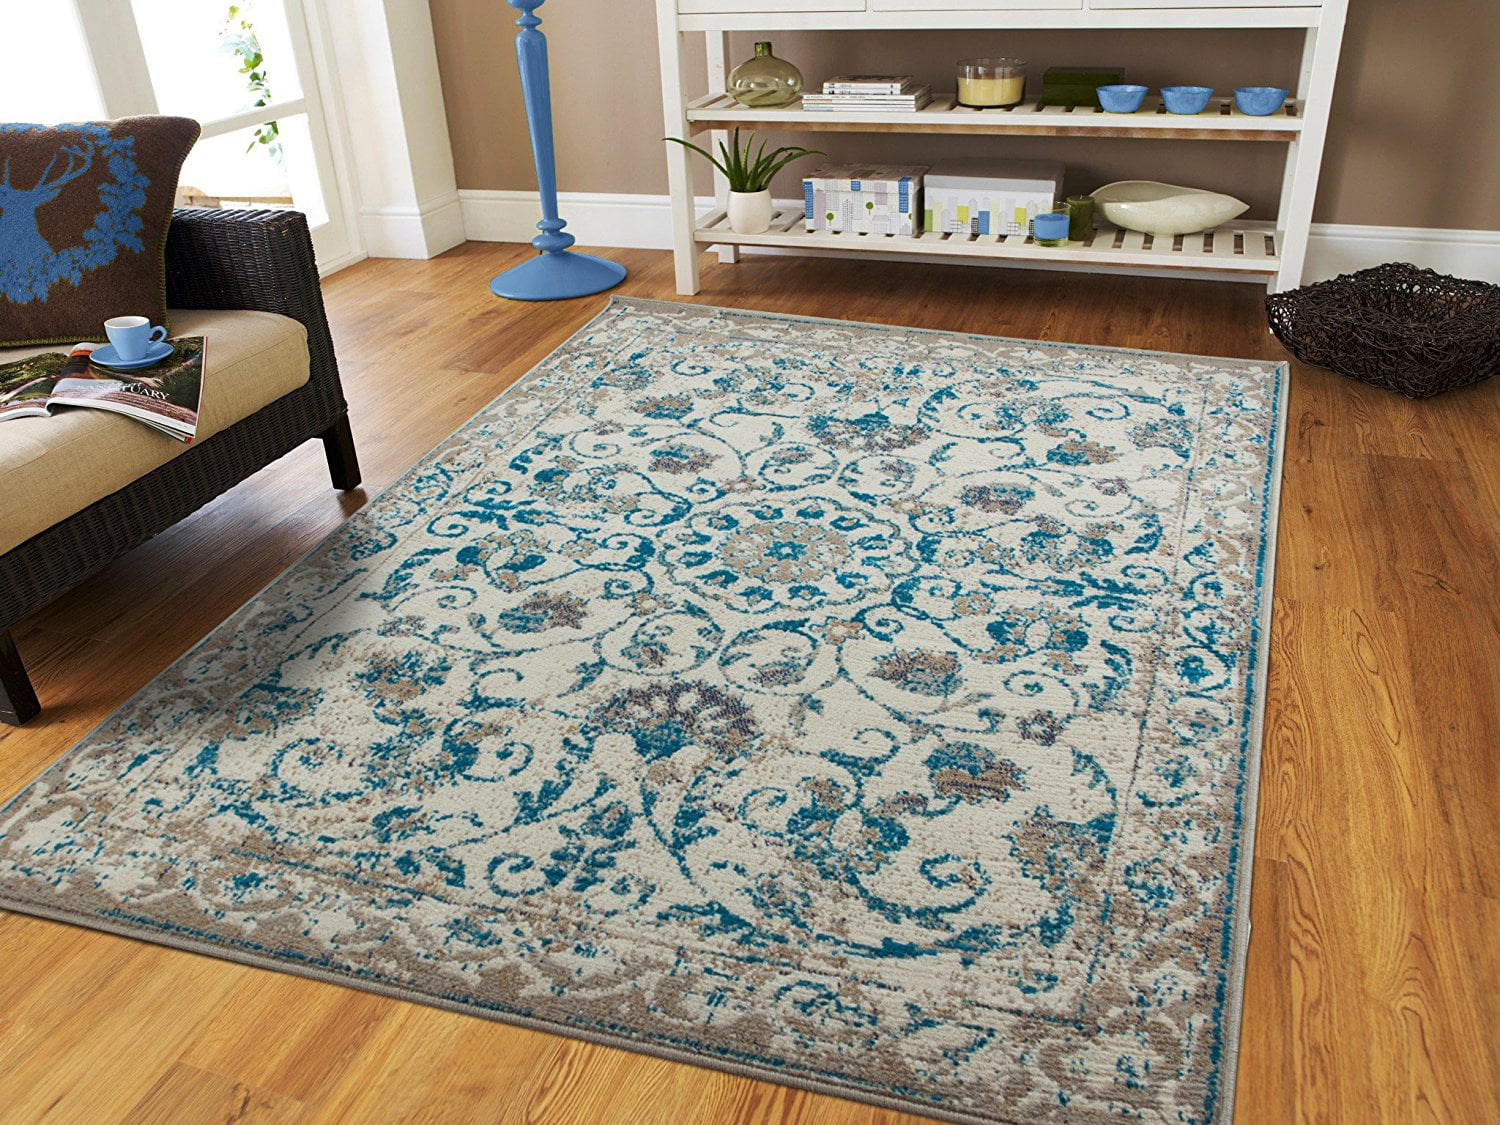 Century Rugs Traditional Vintage Area Rug Distressed Rugs Blue 8x10 ...